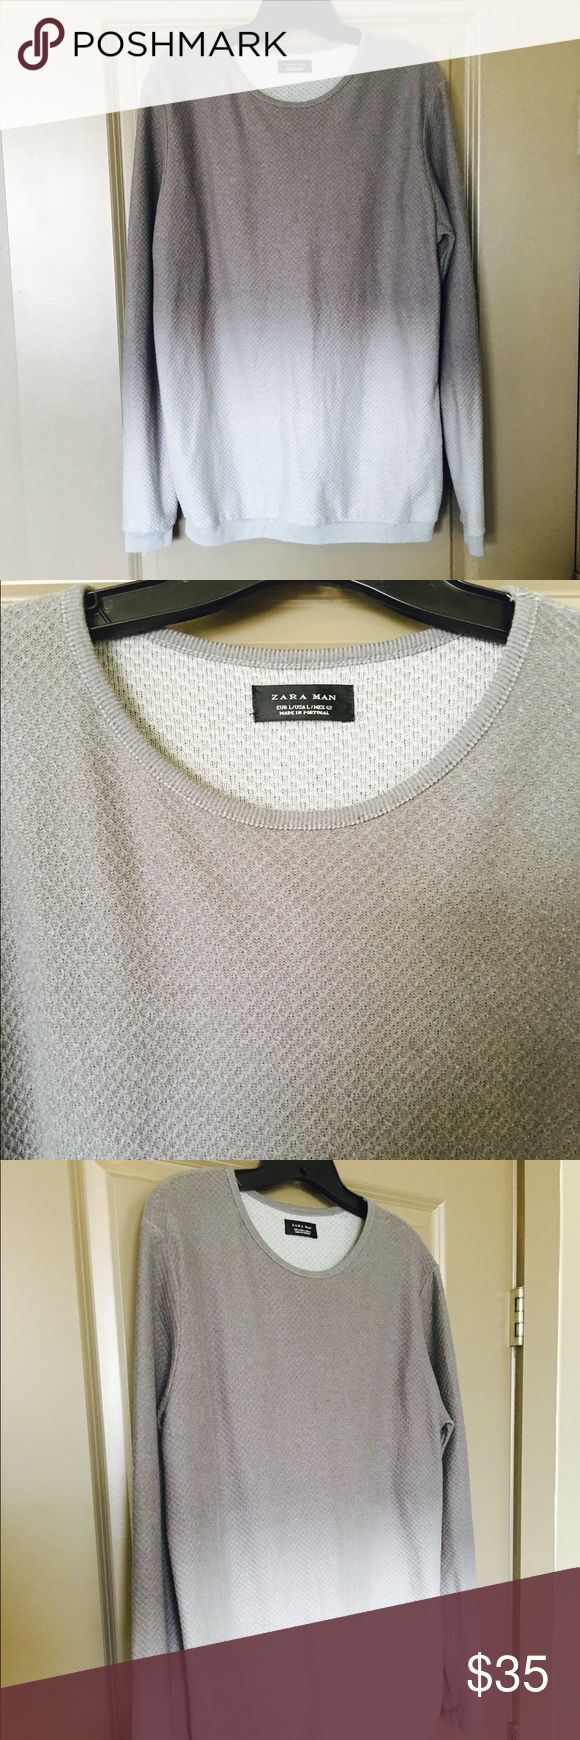 🎉SALE🎉Zara Fade Sweater Zara men's size L fade Sweater from dark gray to light gray. Brand new with tags. Can be dressed up or down! Zara Sweaters Crewneck